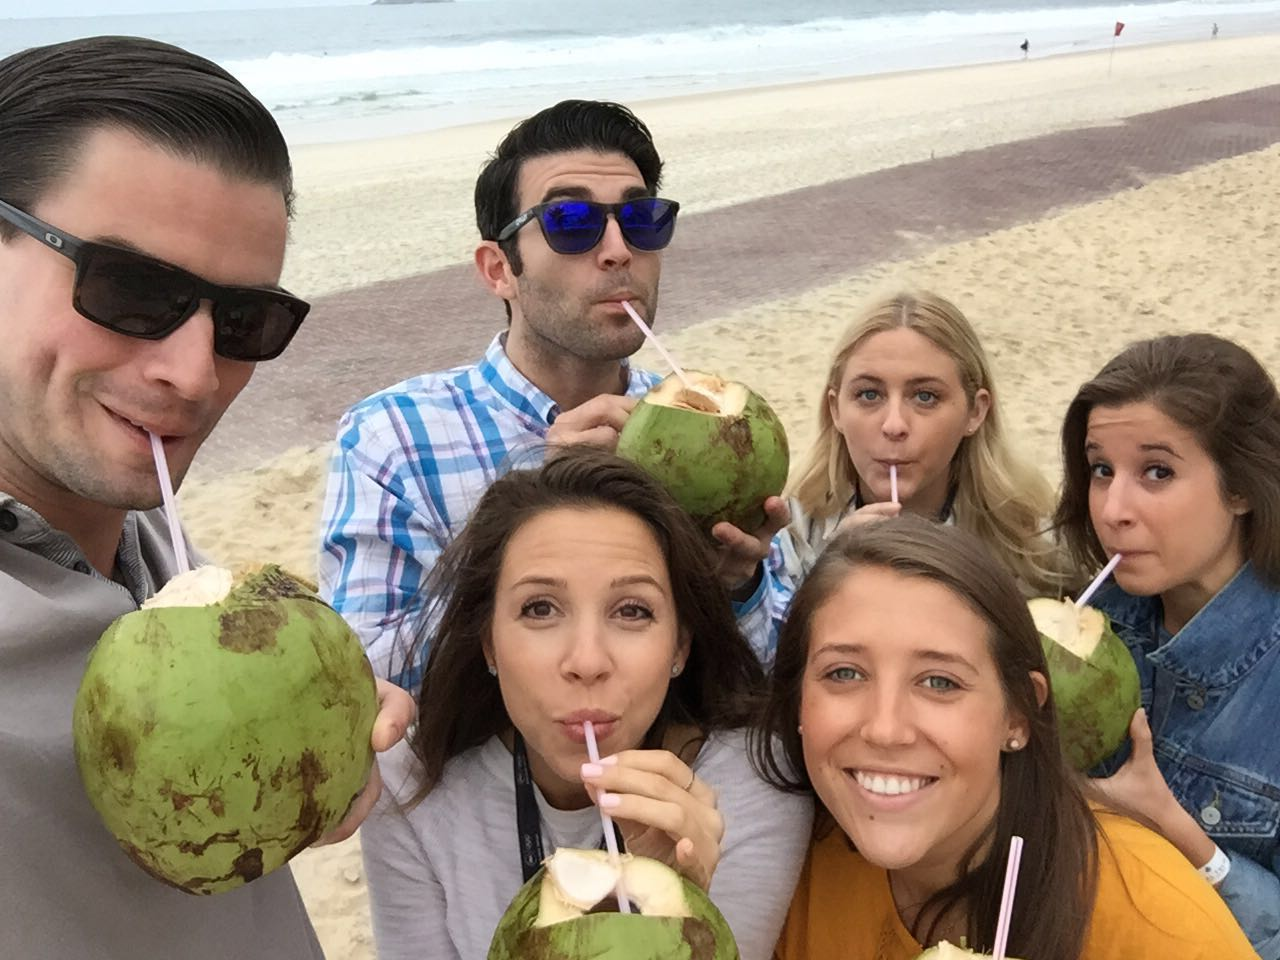 Our Ketchum Sports and Entertainment team enjoyed coconuts on the beach in Rio while they were there representing clients during the 2016 Olympics.